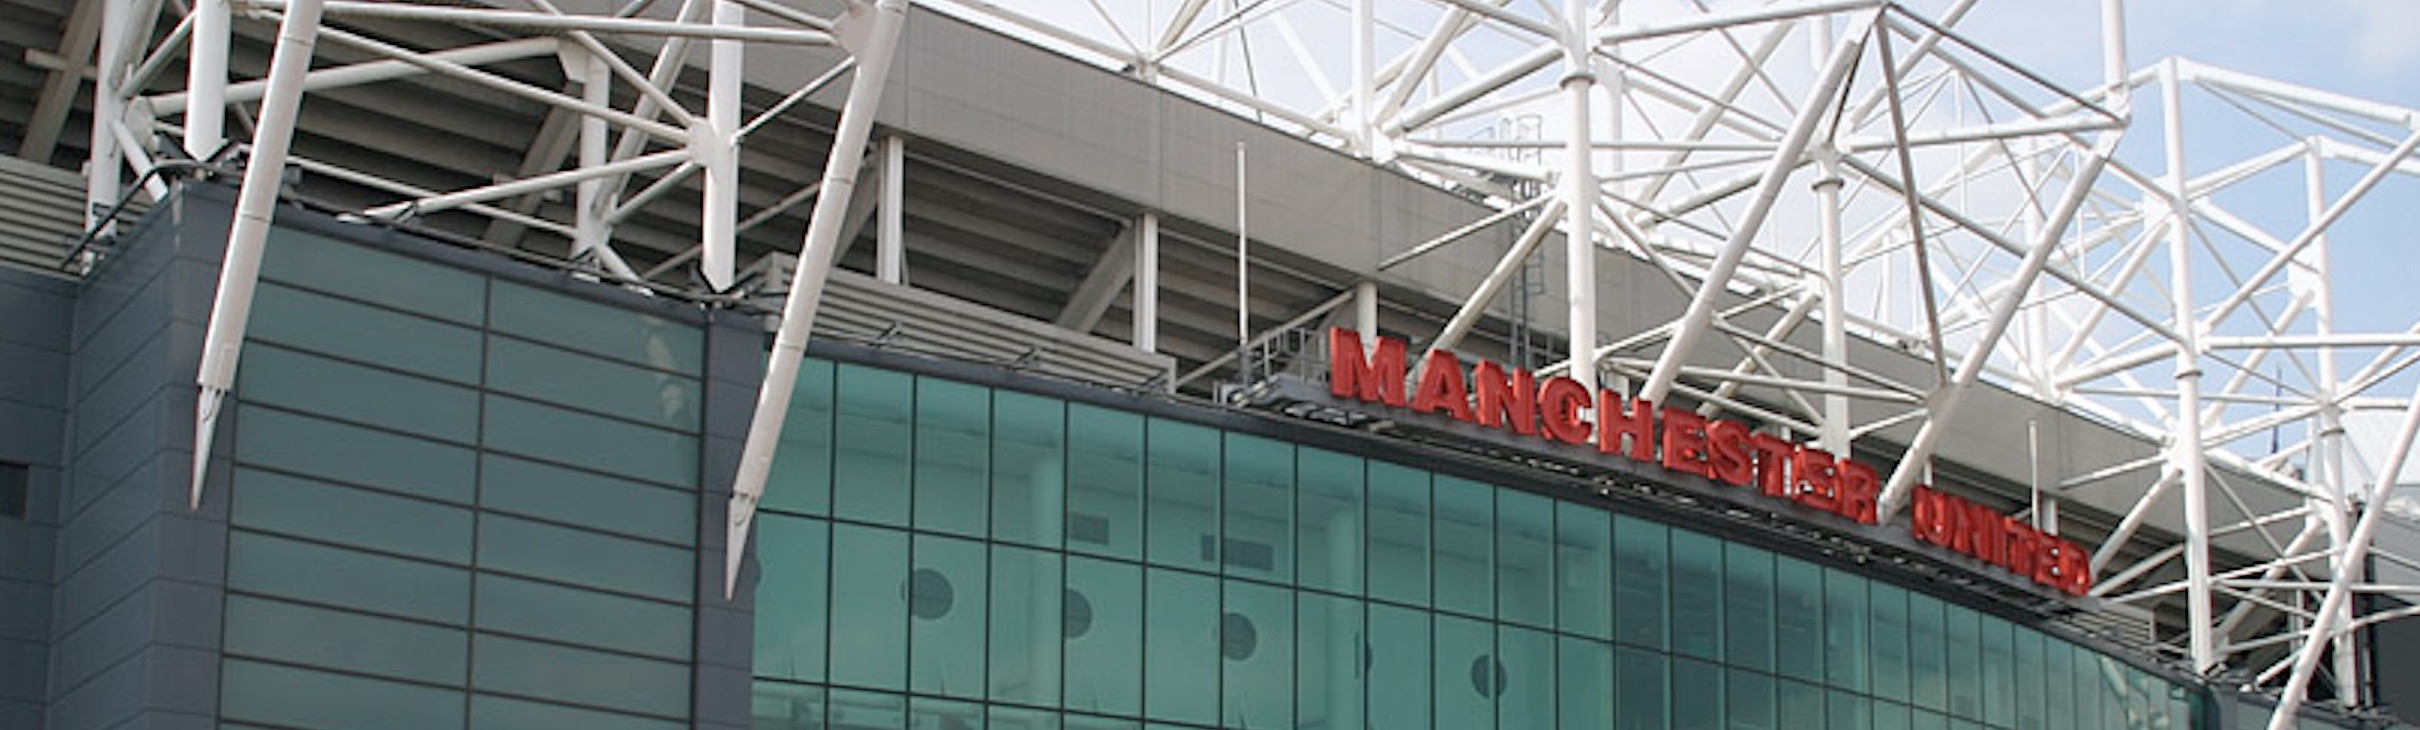 Man United V Liverpool - Coach/Ferry & Hotel